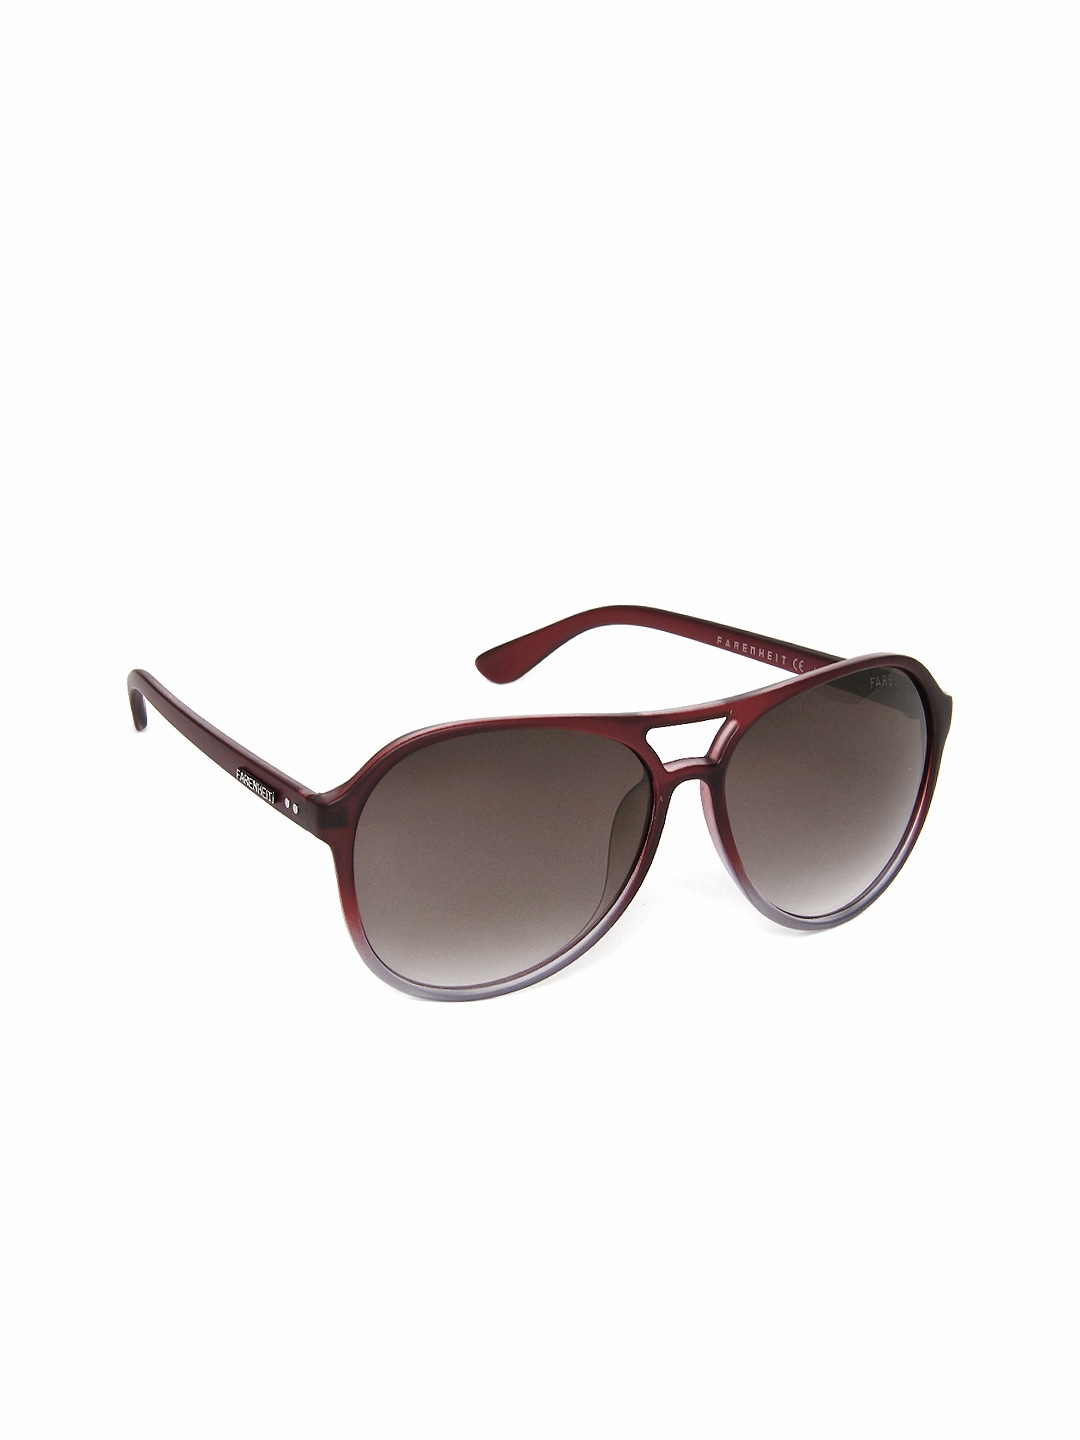 buy aviator sunglasses online  aviator sunglasses wayfarer